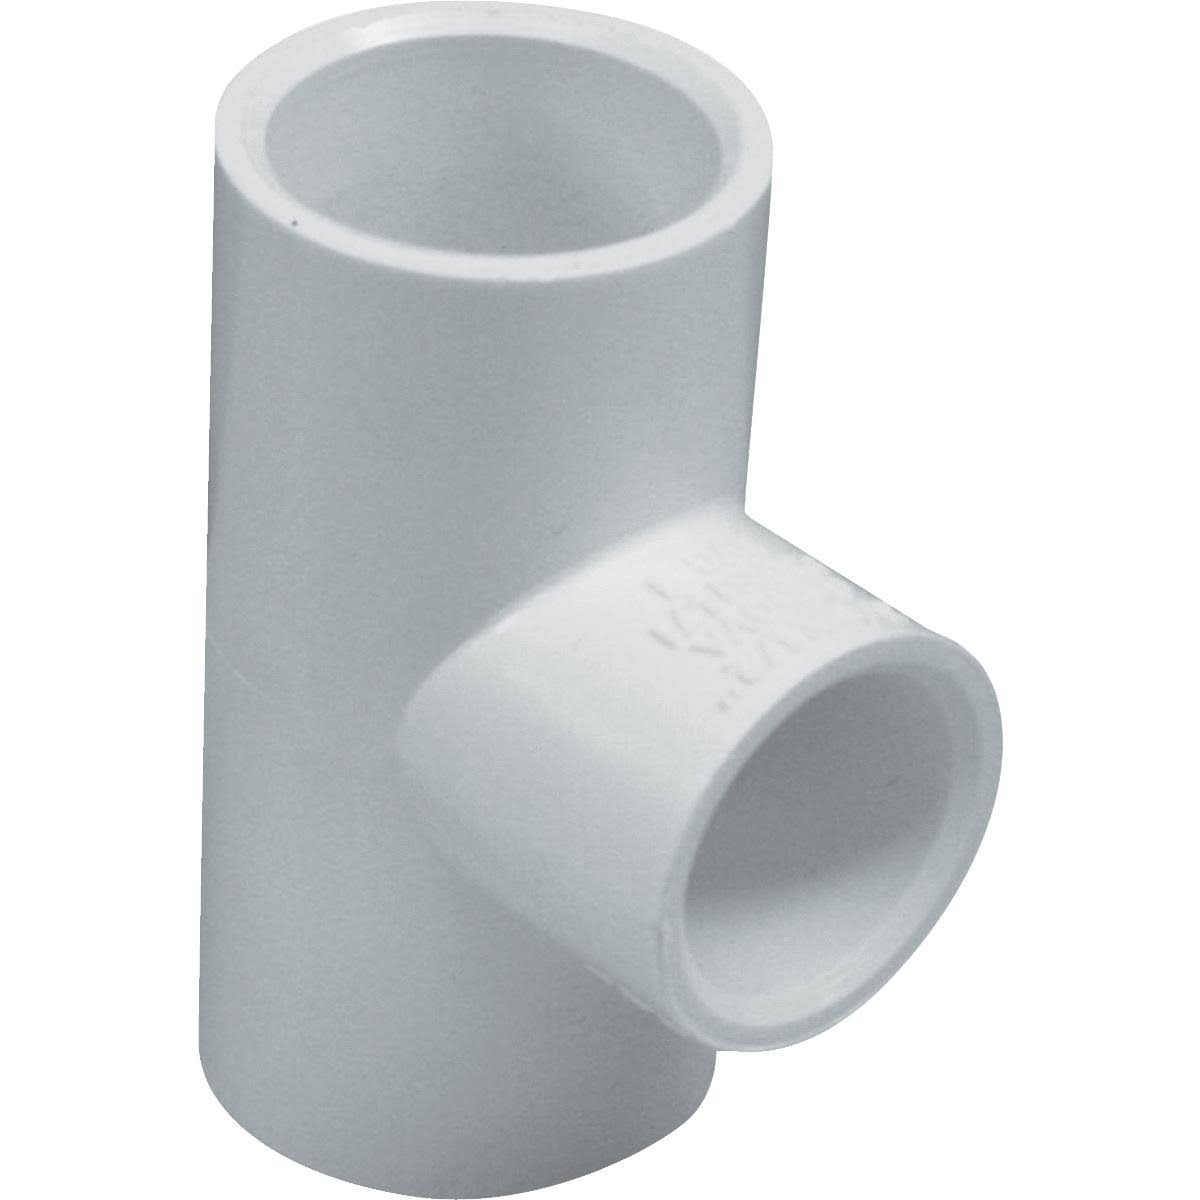 "Genova Products Pvc Reducing Tees - 1"" x 1"" x 0.5"""